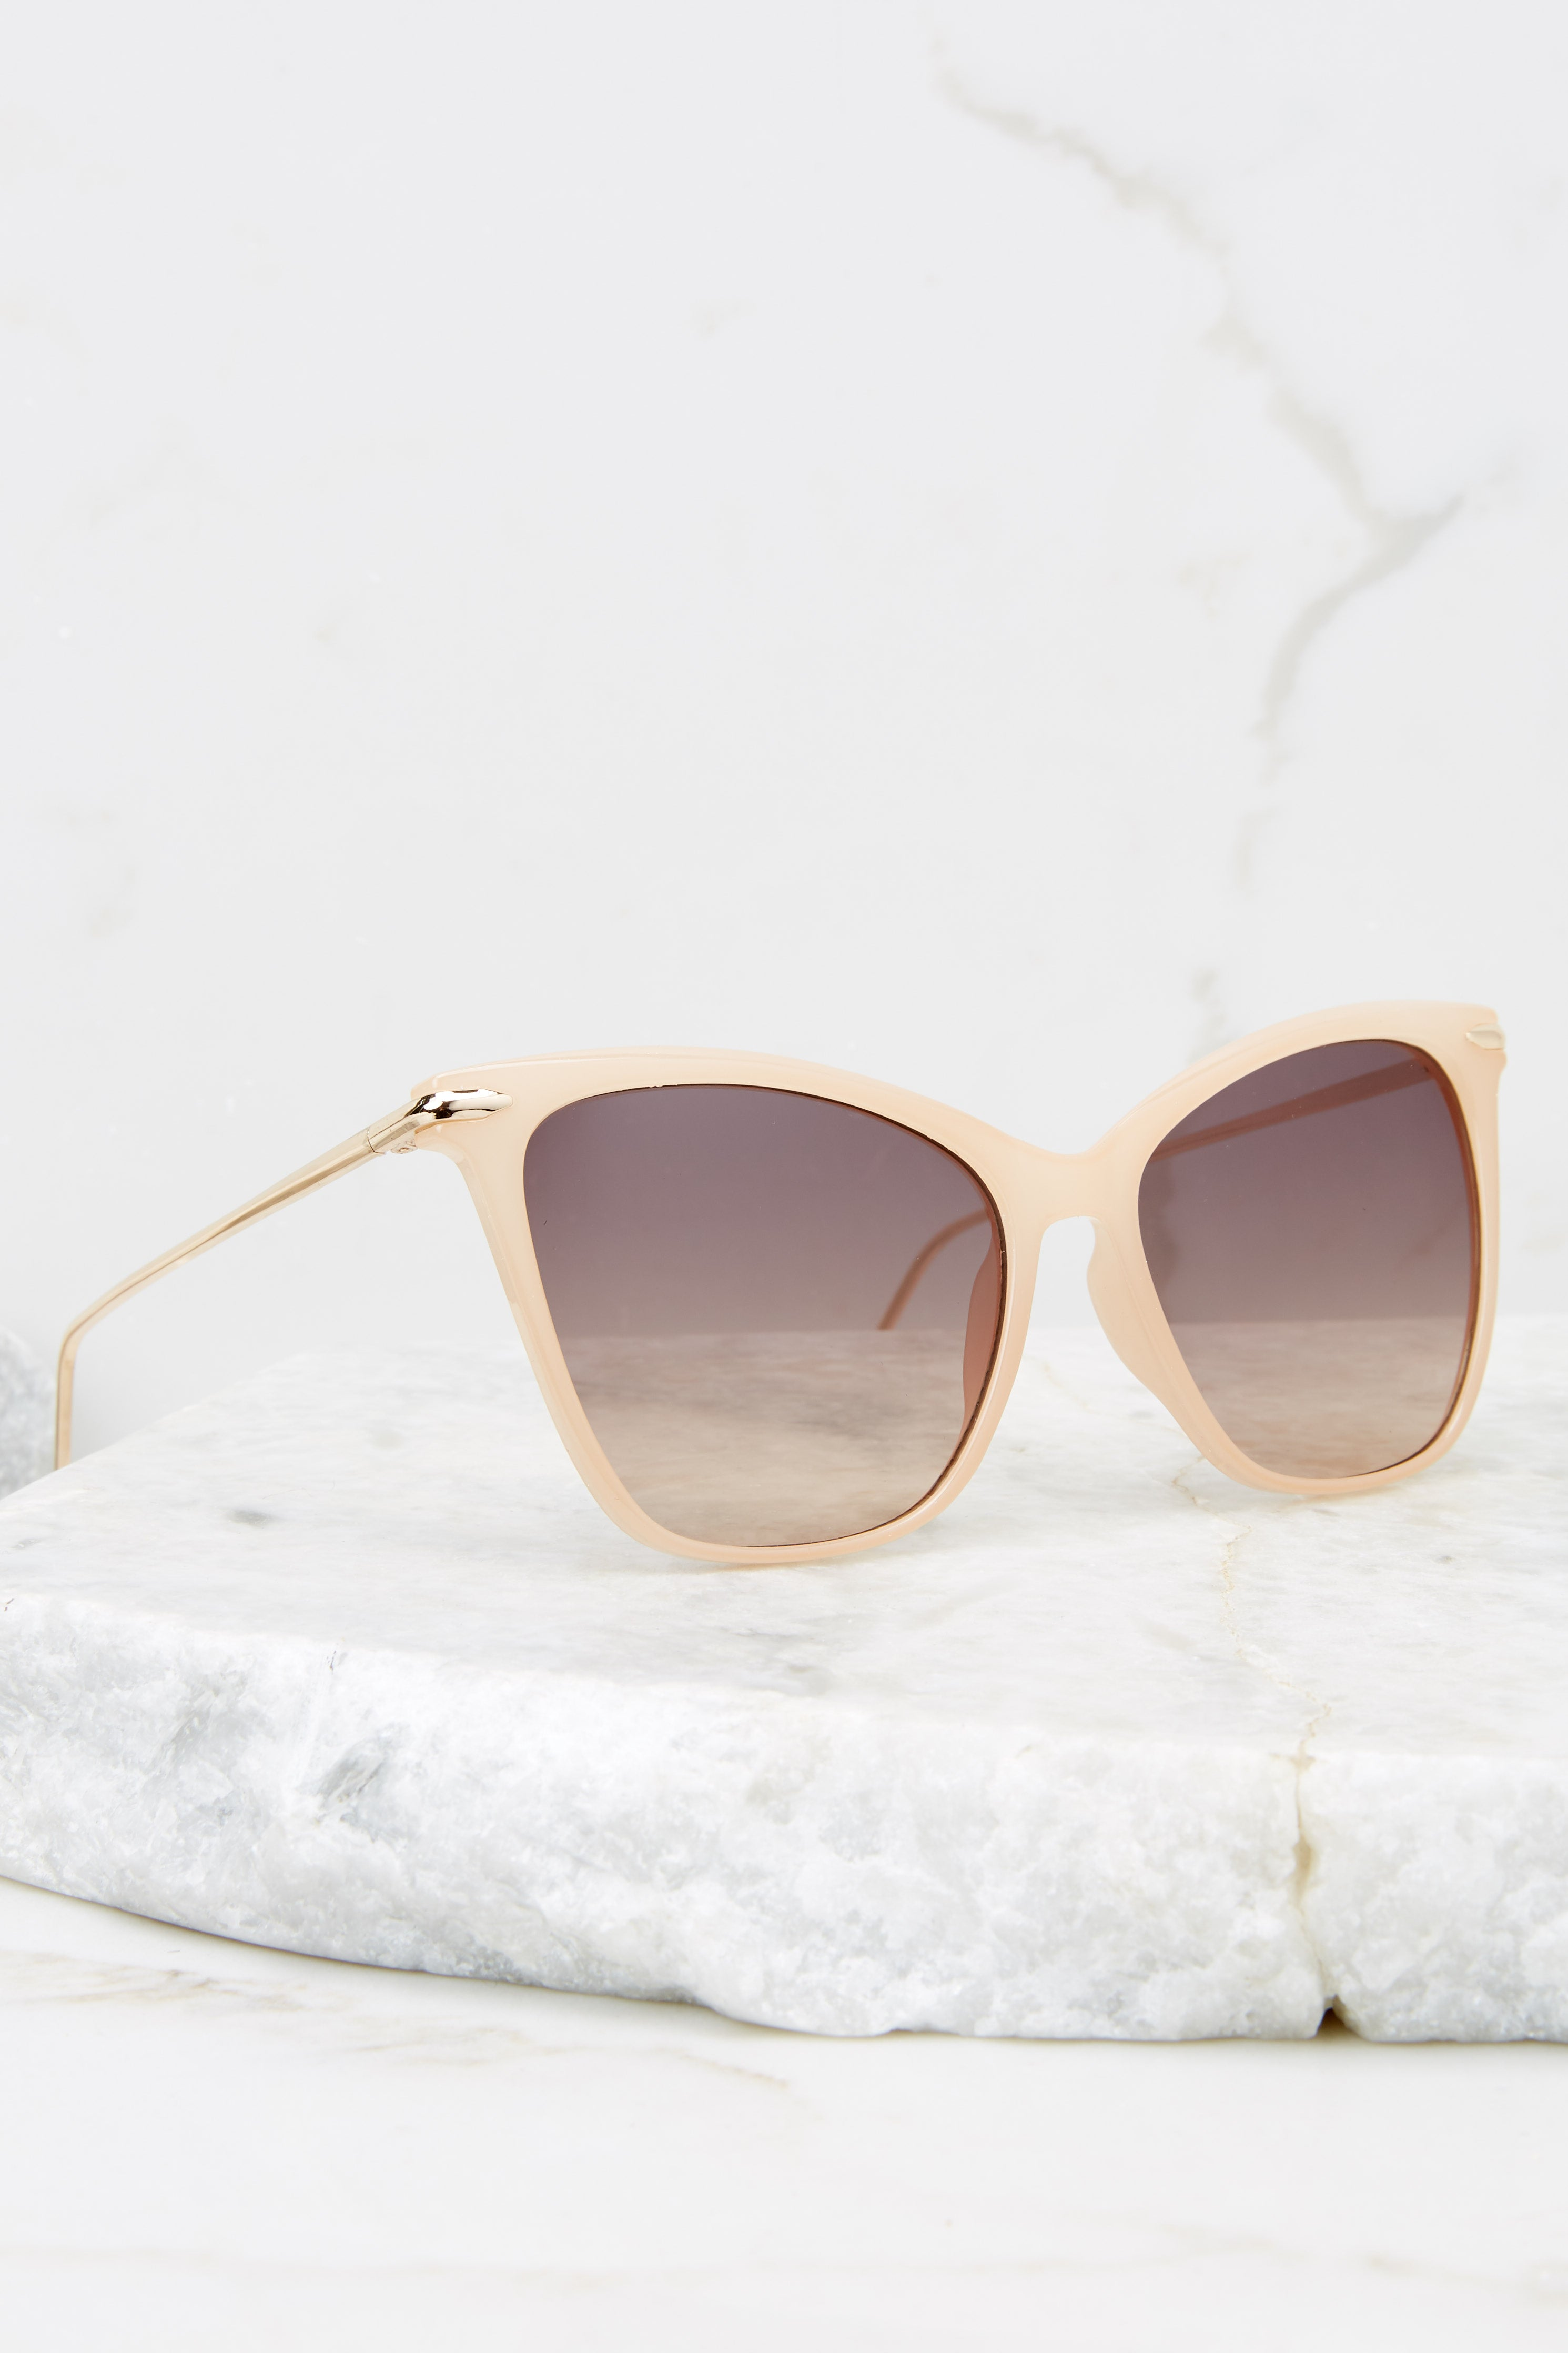 3 Glamorous Glance Beige Brown Fade Sunglasses at reddress.com